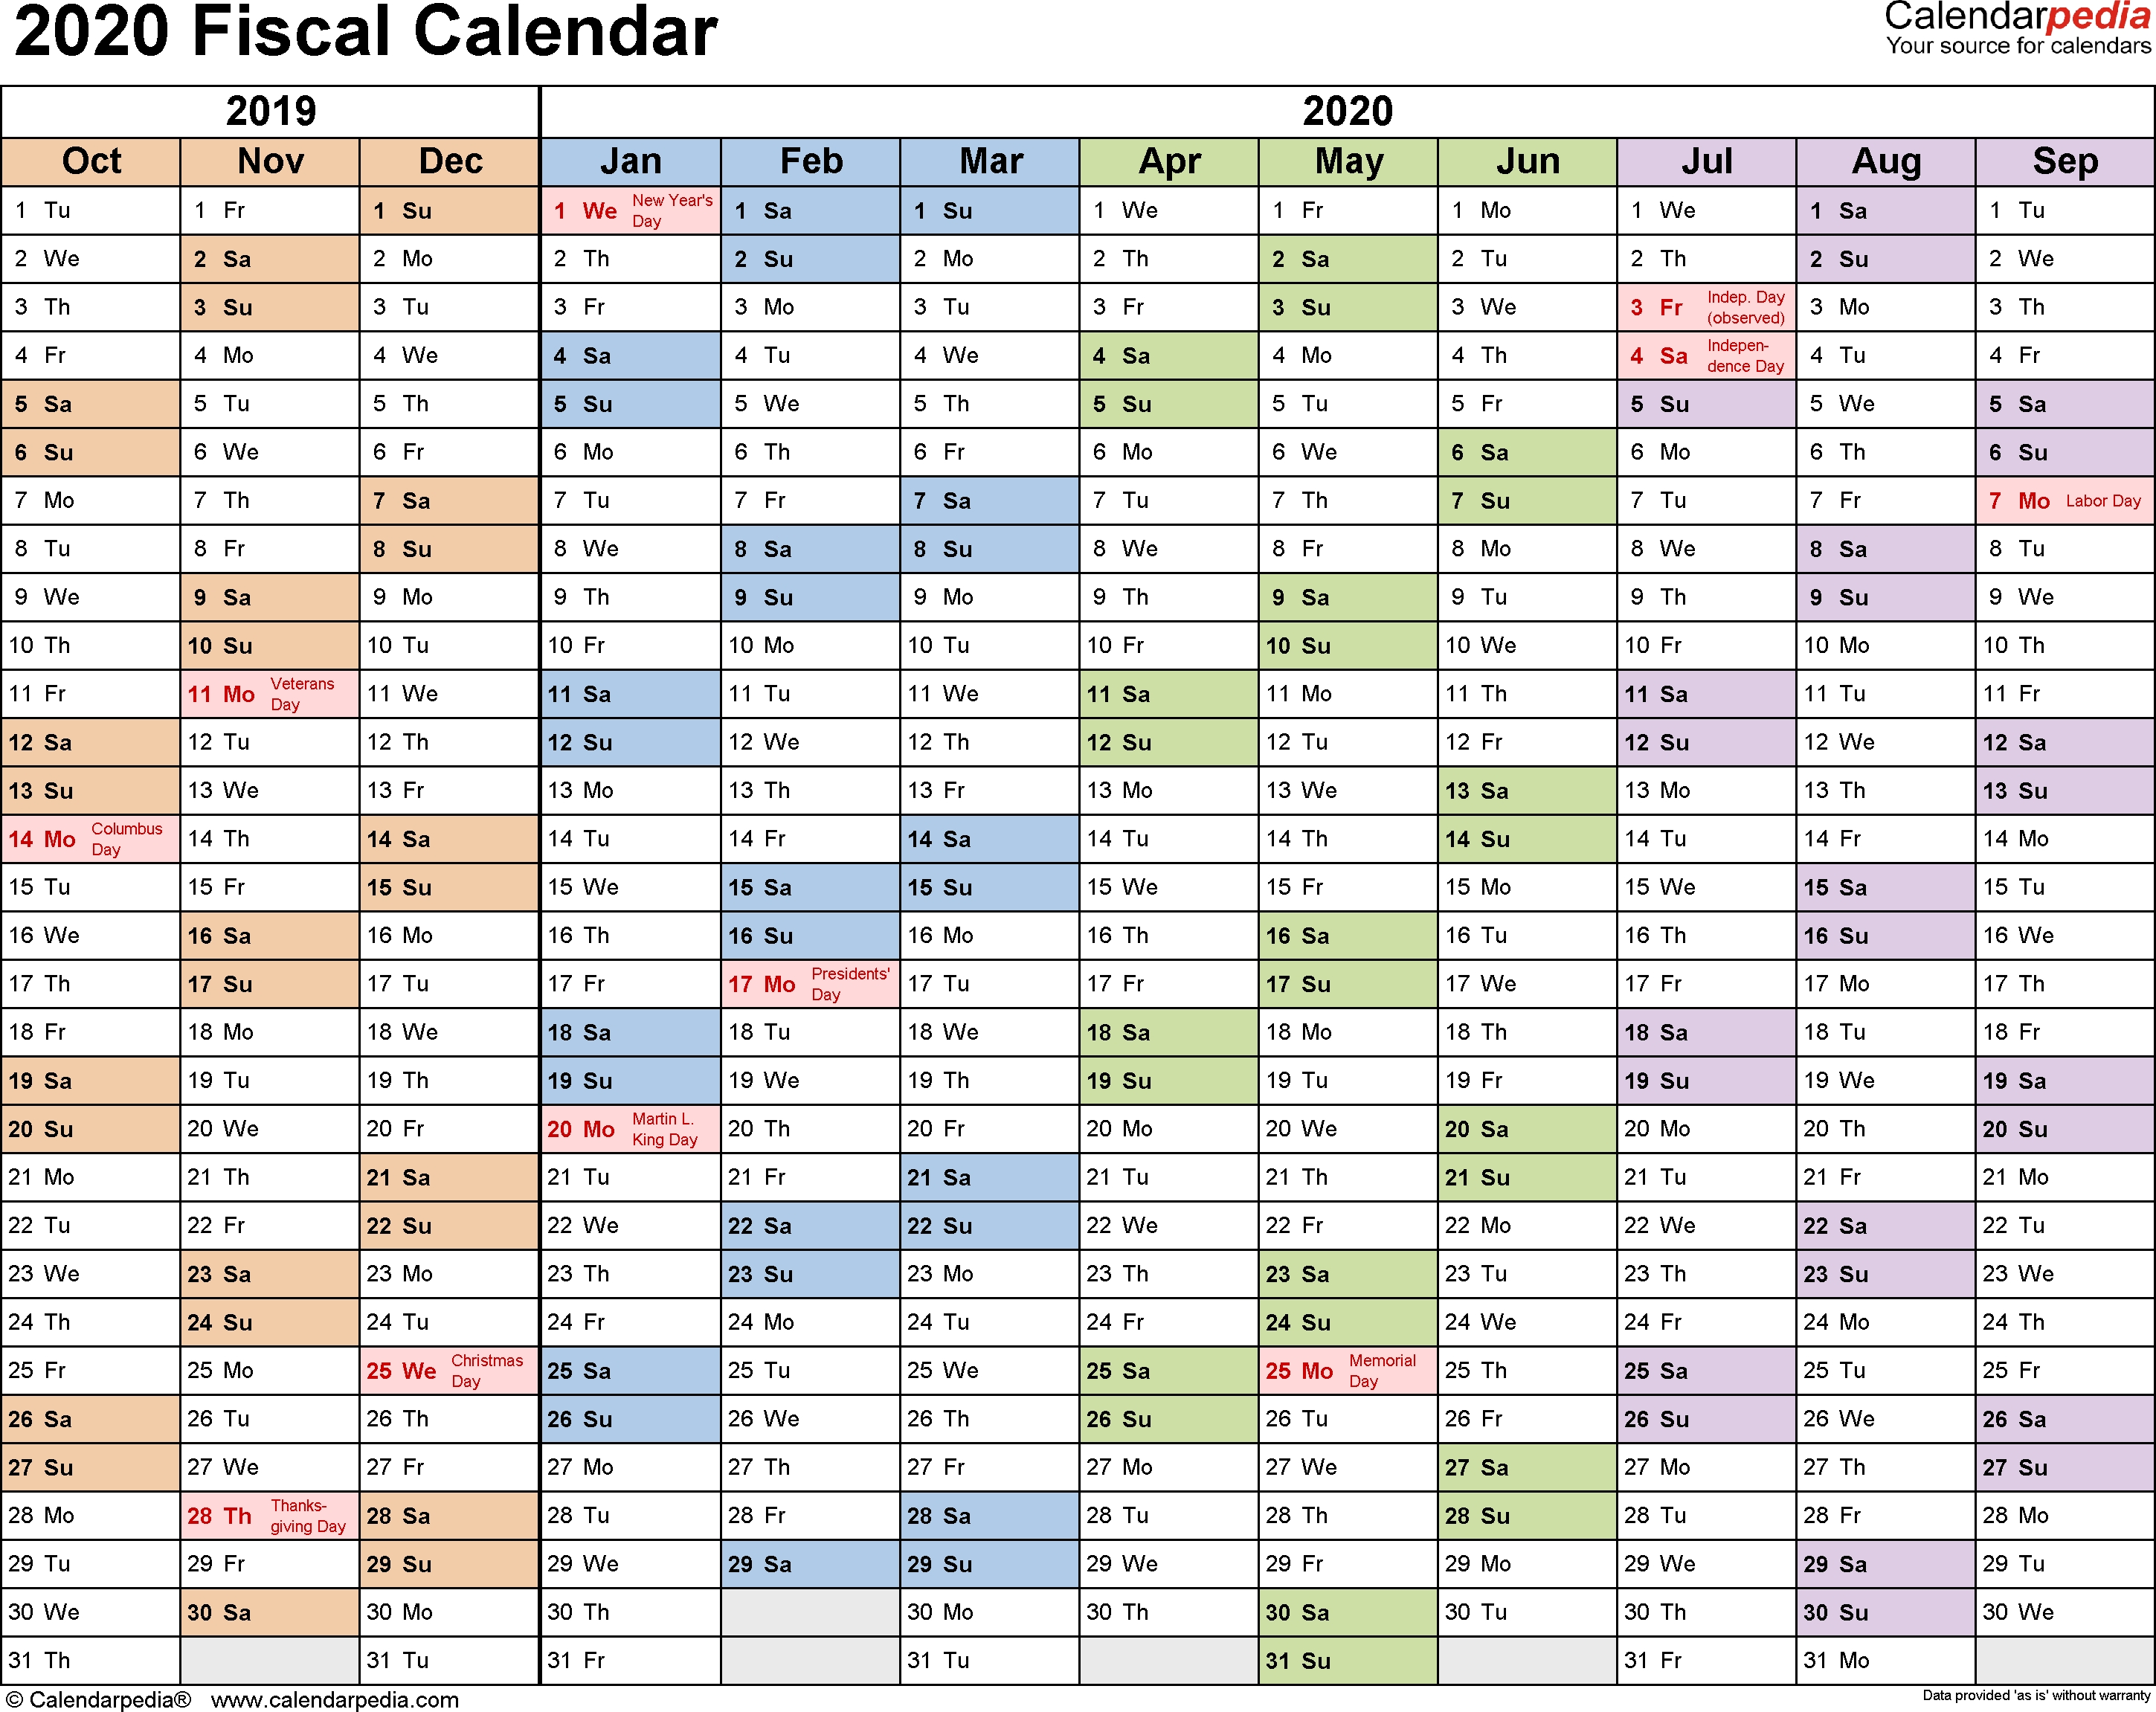 Fiscal Calendars 2020 As Free Printable Pdf Templates intended for Tax Week Calendar 2019 2020